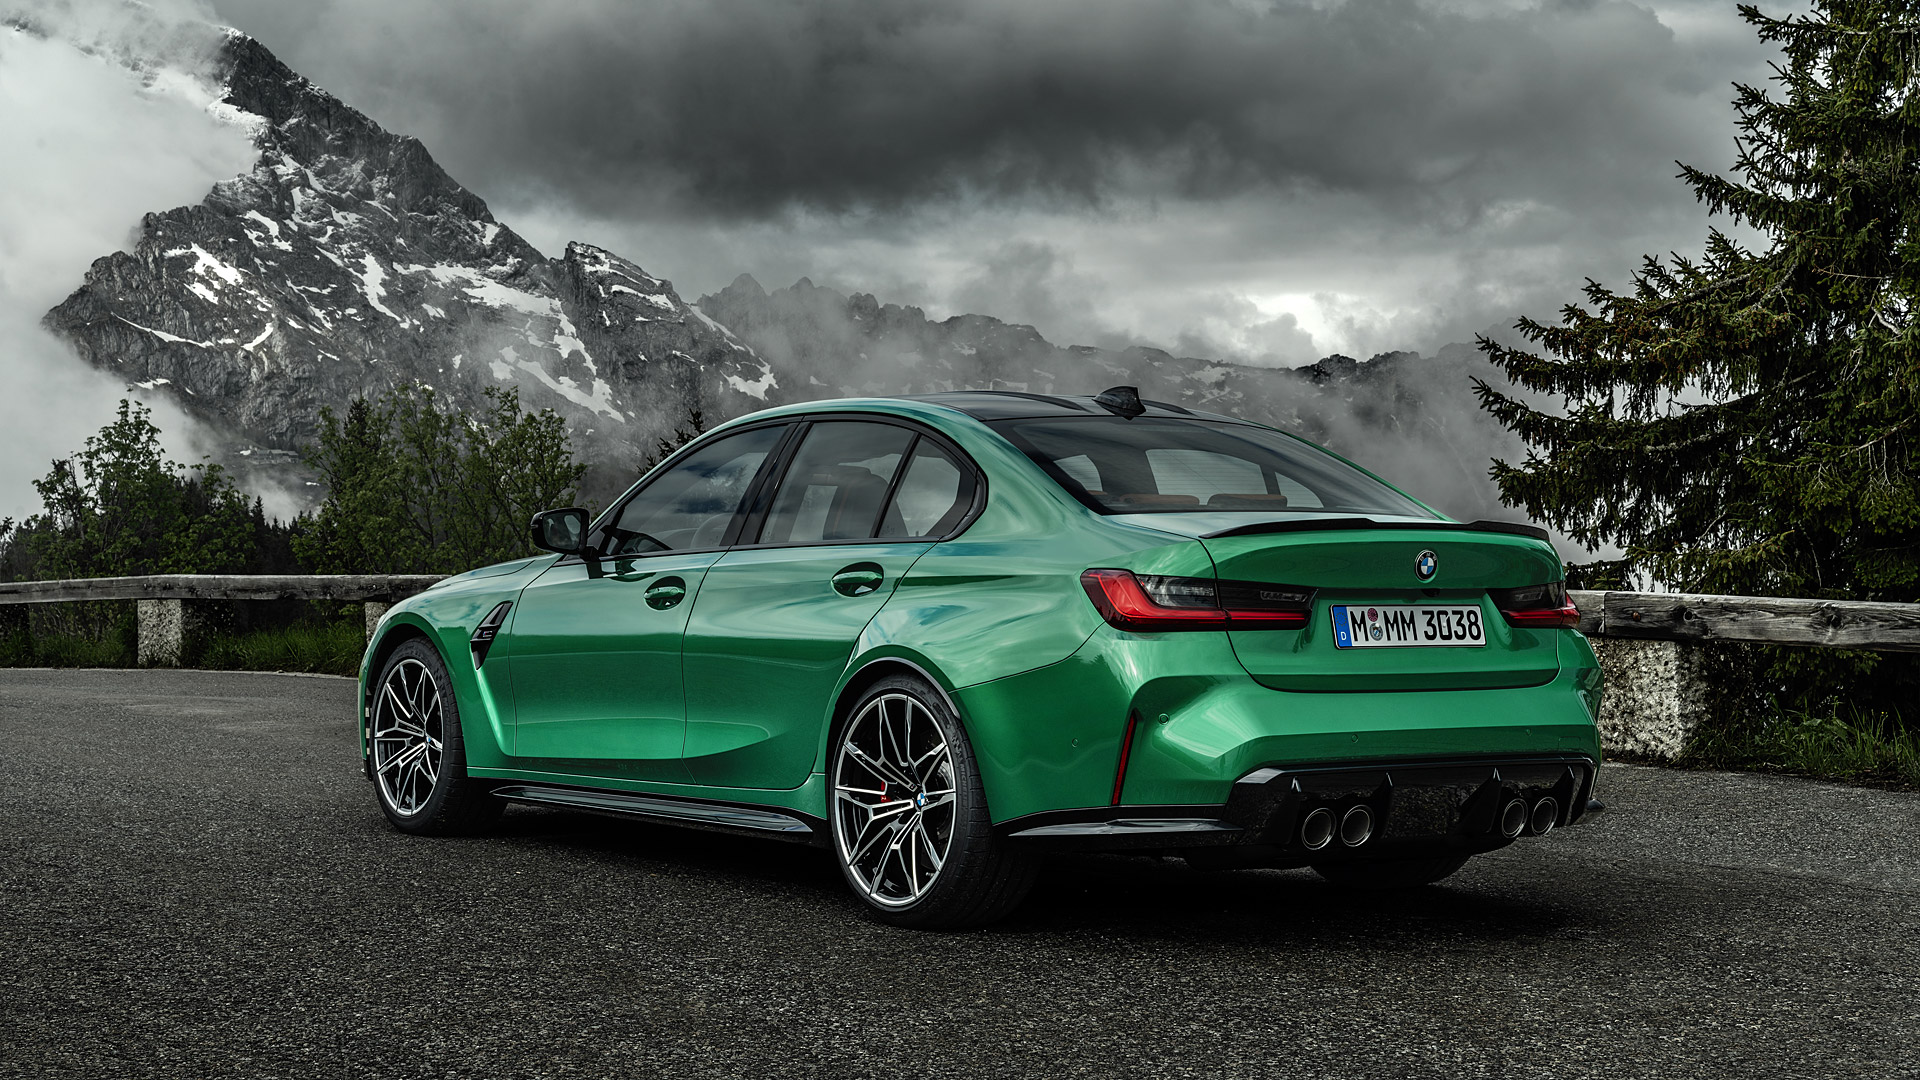 2021 BMW M3 Competition Wallpapers Specs Videos   4K HD 1920x1080